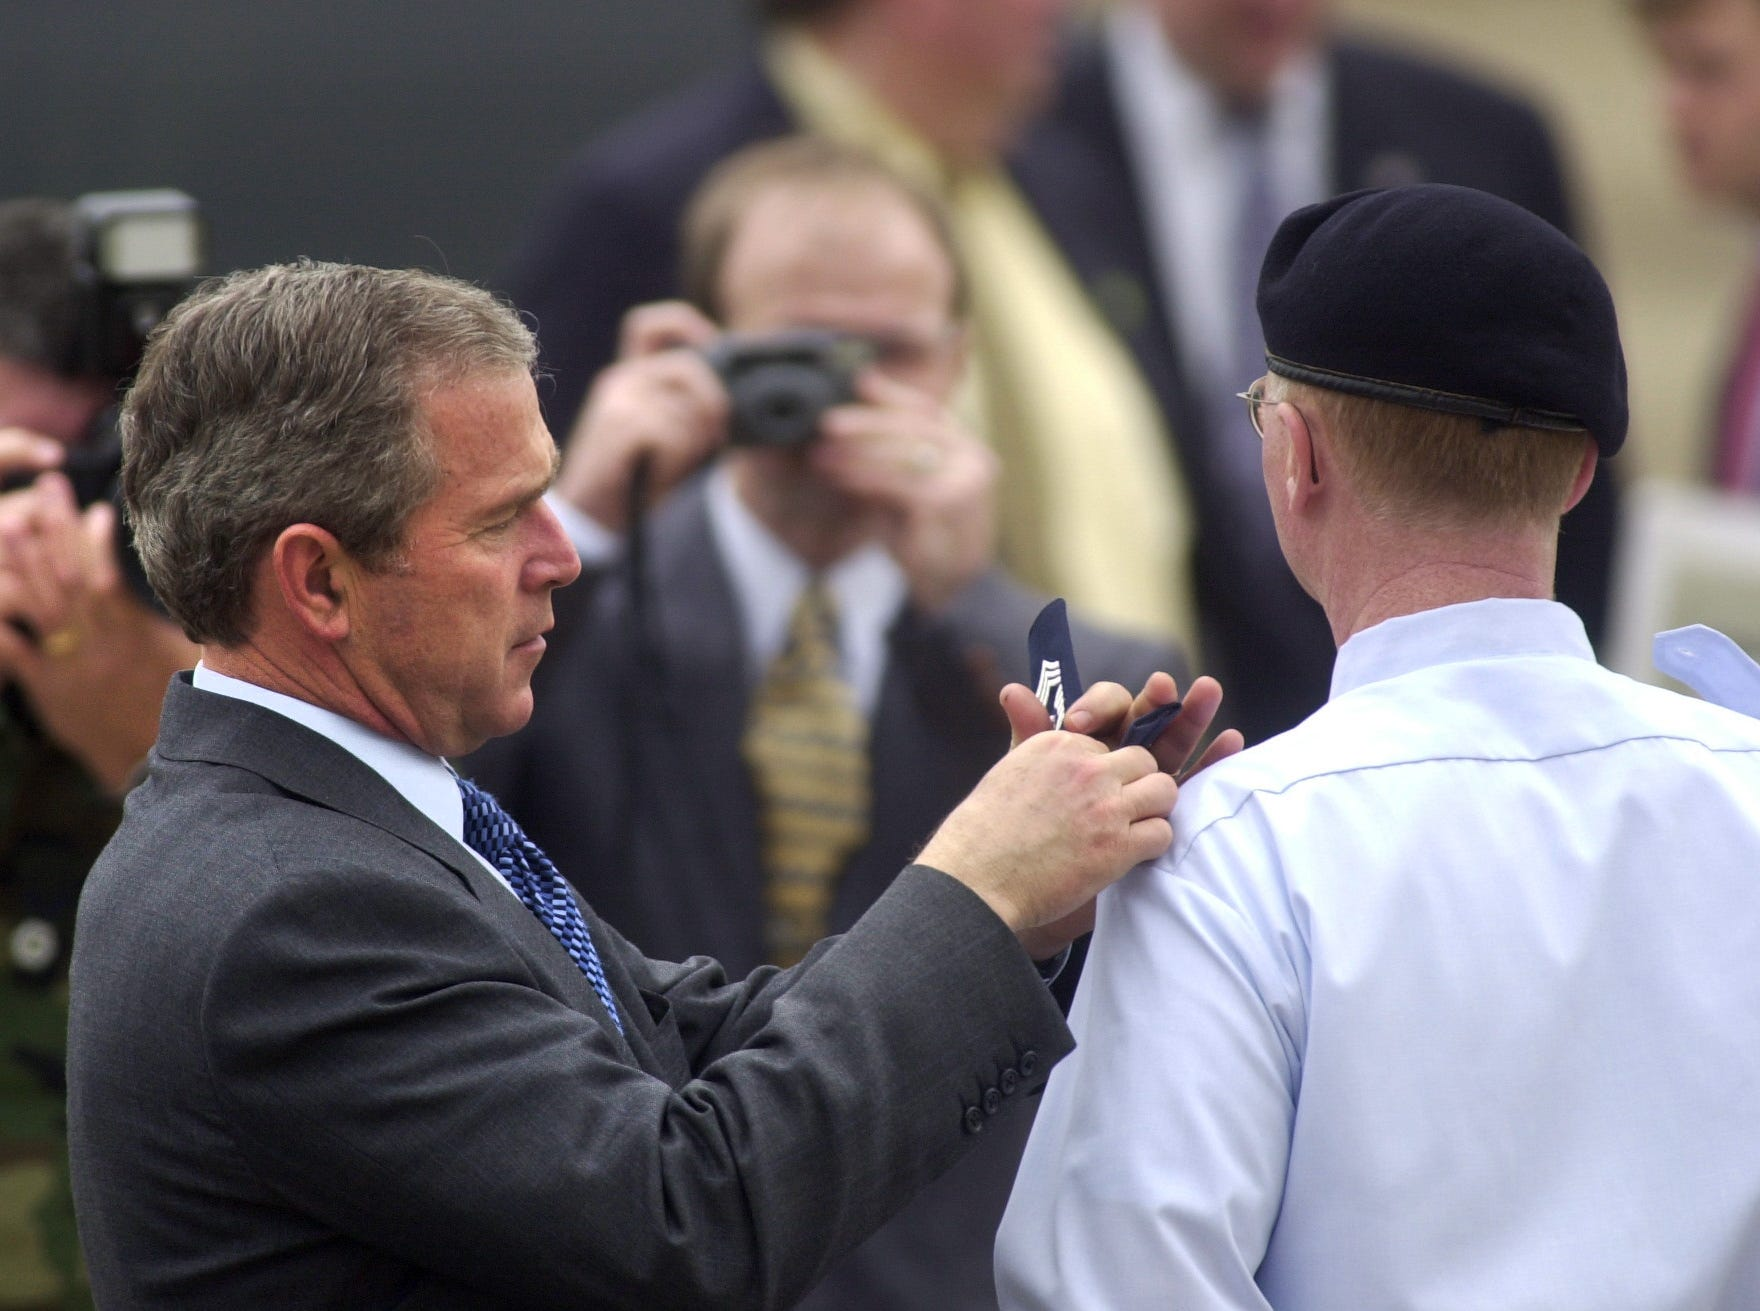 President George W. Bush pins new stripes on Chief Master Sgt. Terry Hickle Wednesday, Feb. 21, 2001, at McGhee Tyson Air National Guard Base. Hickle, the chief of security for the 134th Air Refueling Squadron, was promoted from senior master sergeant in a brief ceremony before Bush departed the airbase.